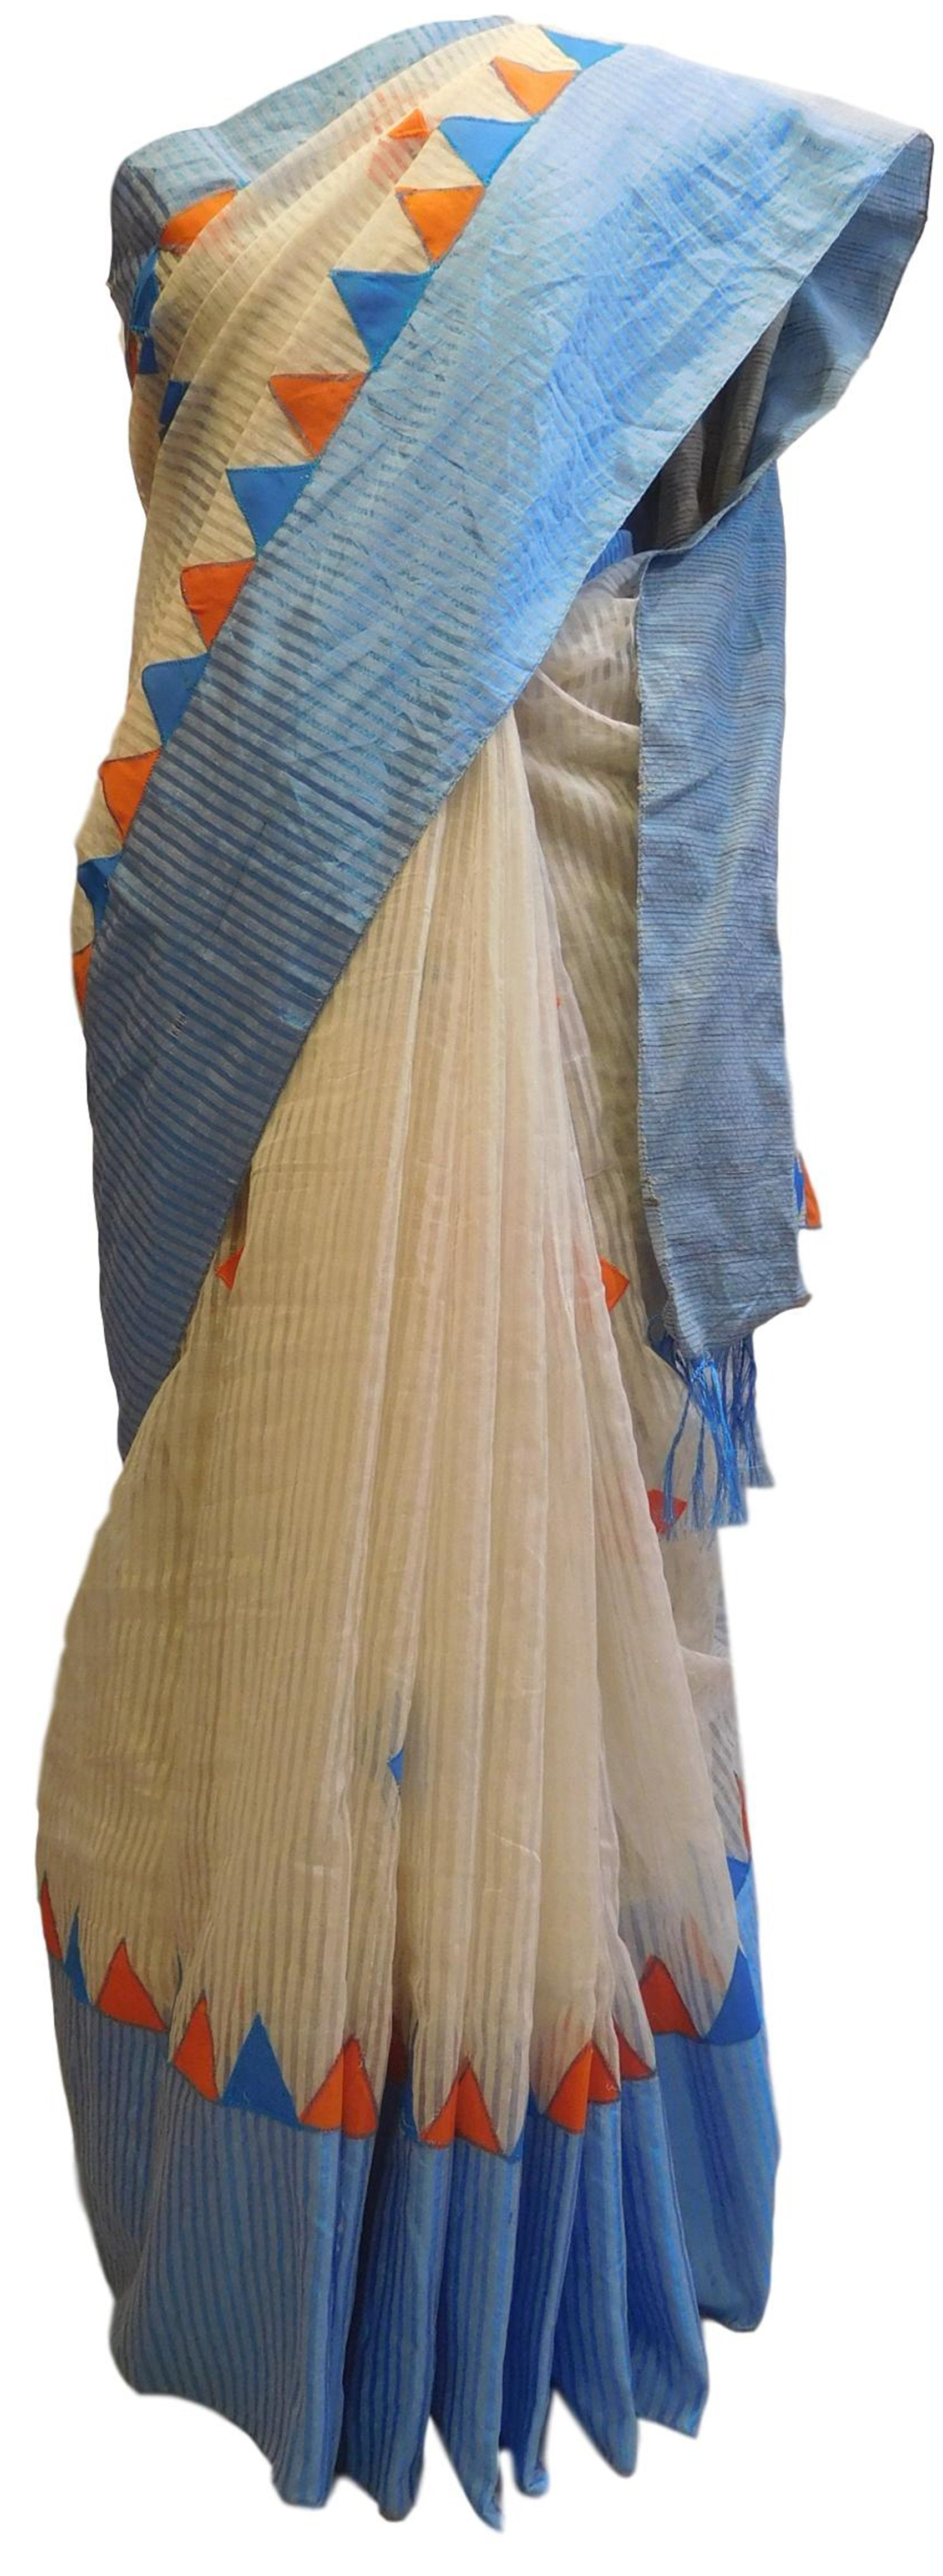 Cream & Blue Designer PartyWear Cotton Thread Work Boutique Style Saree Sari E044